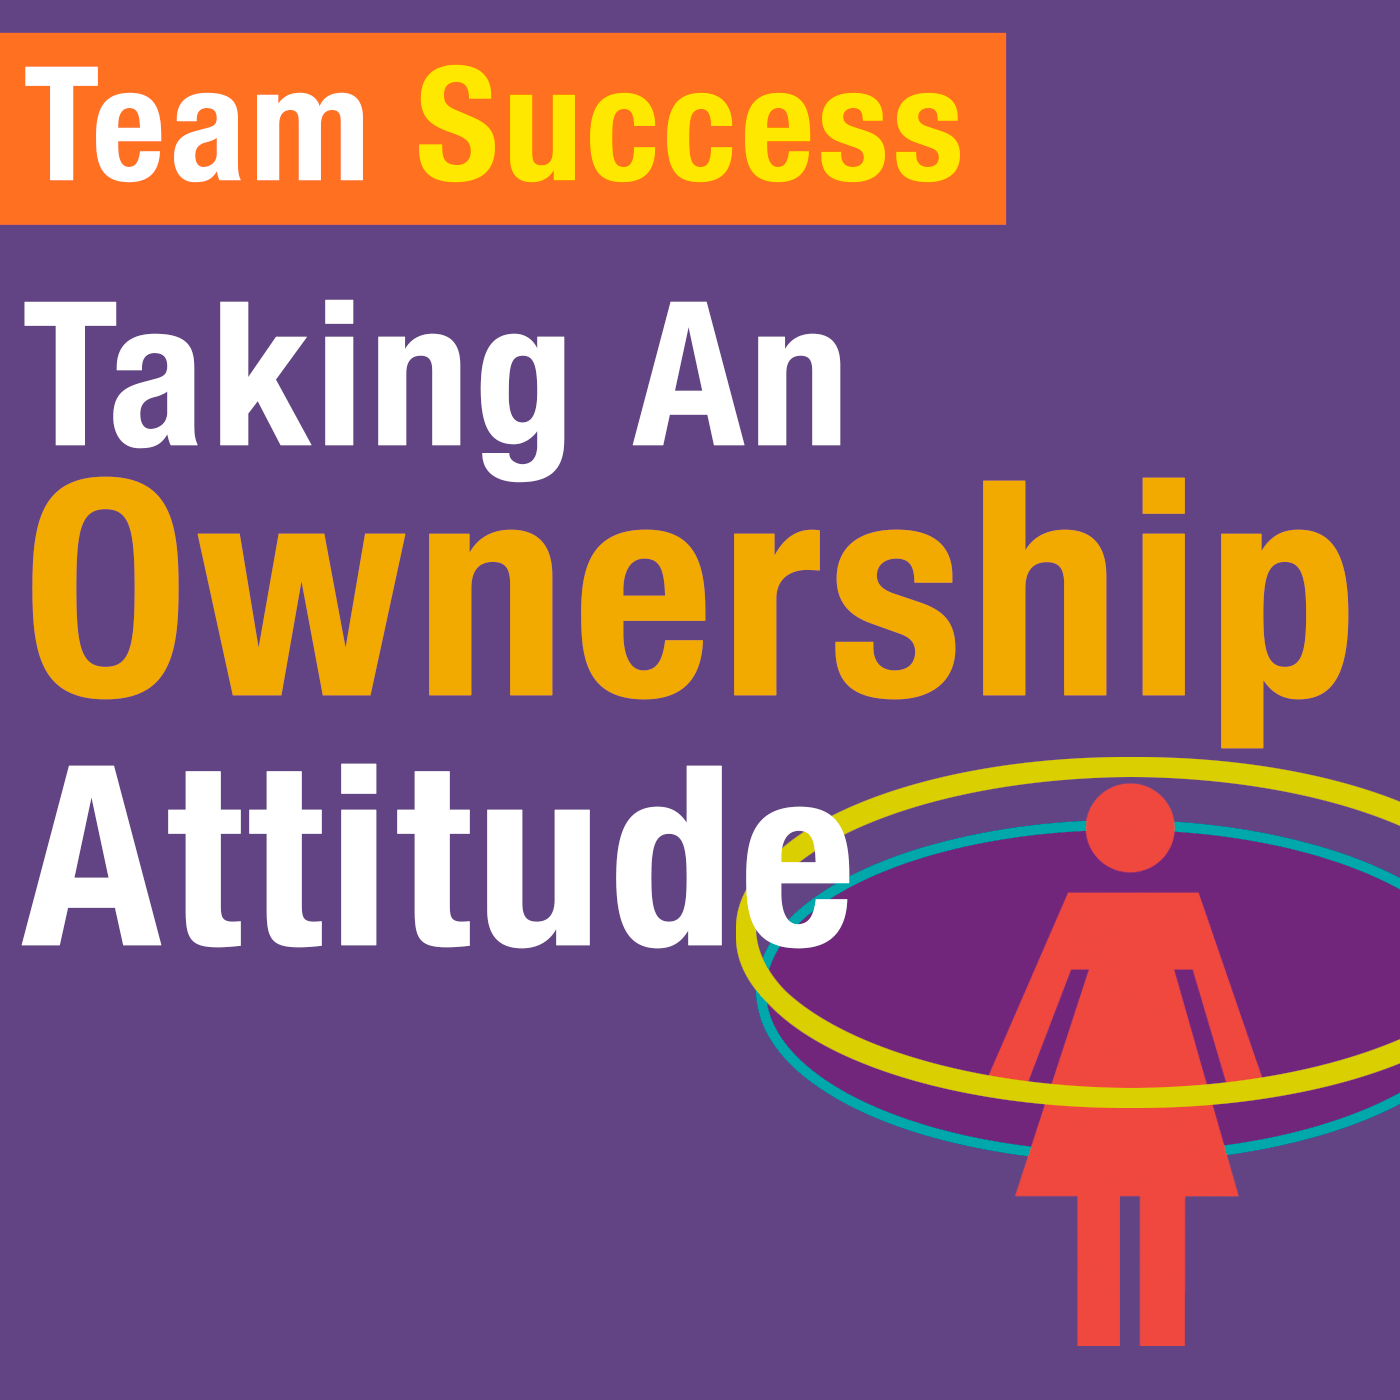 Team Success: Taking An Ownership Attitude